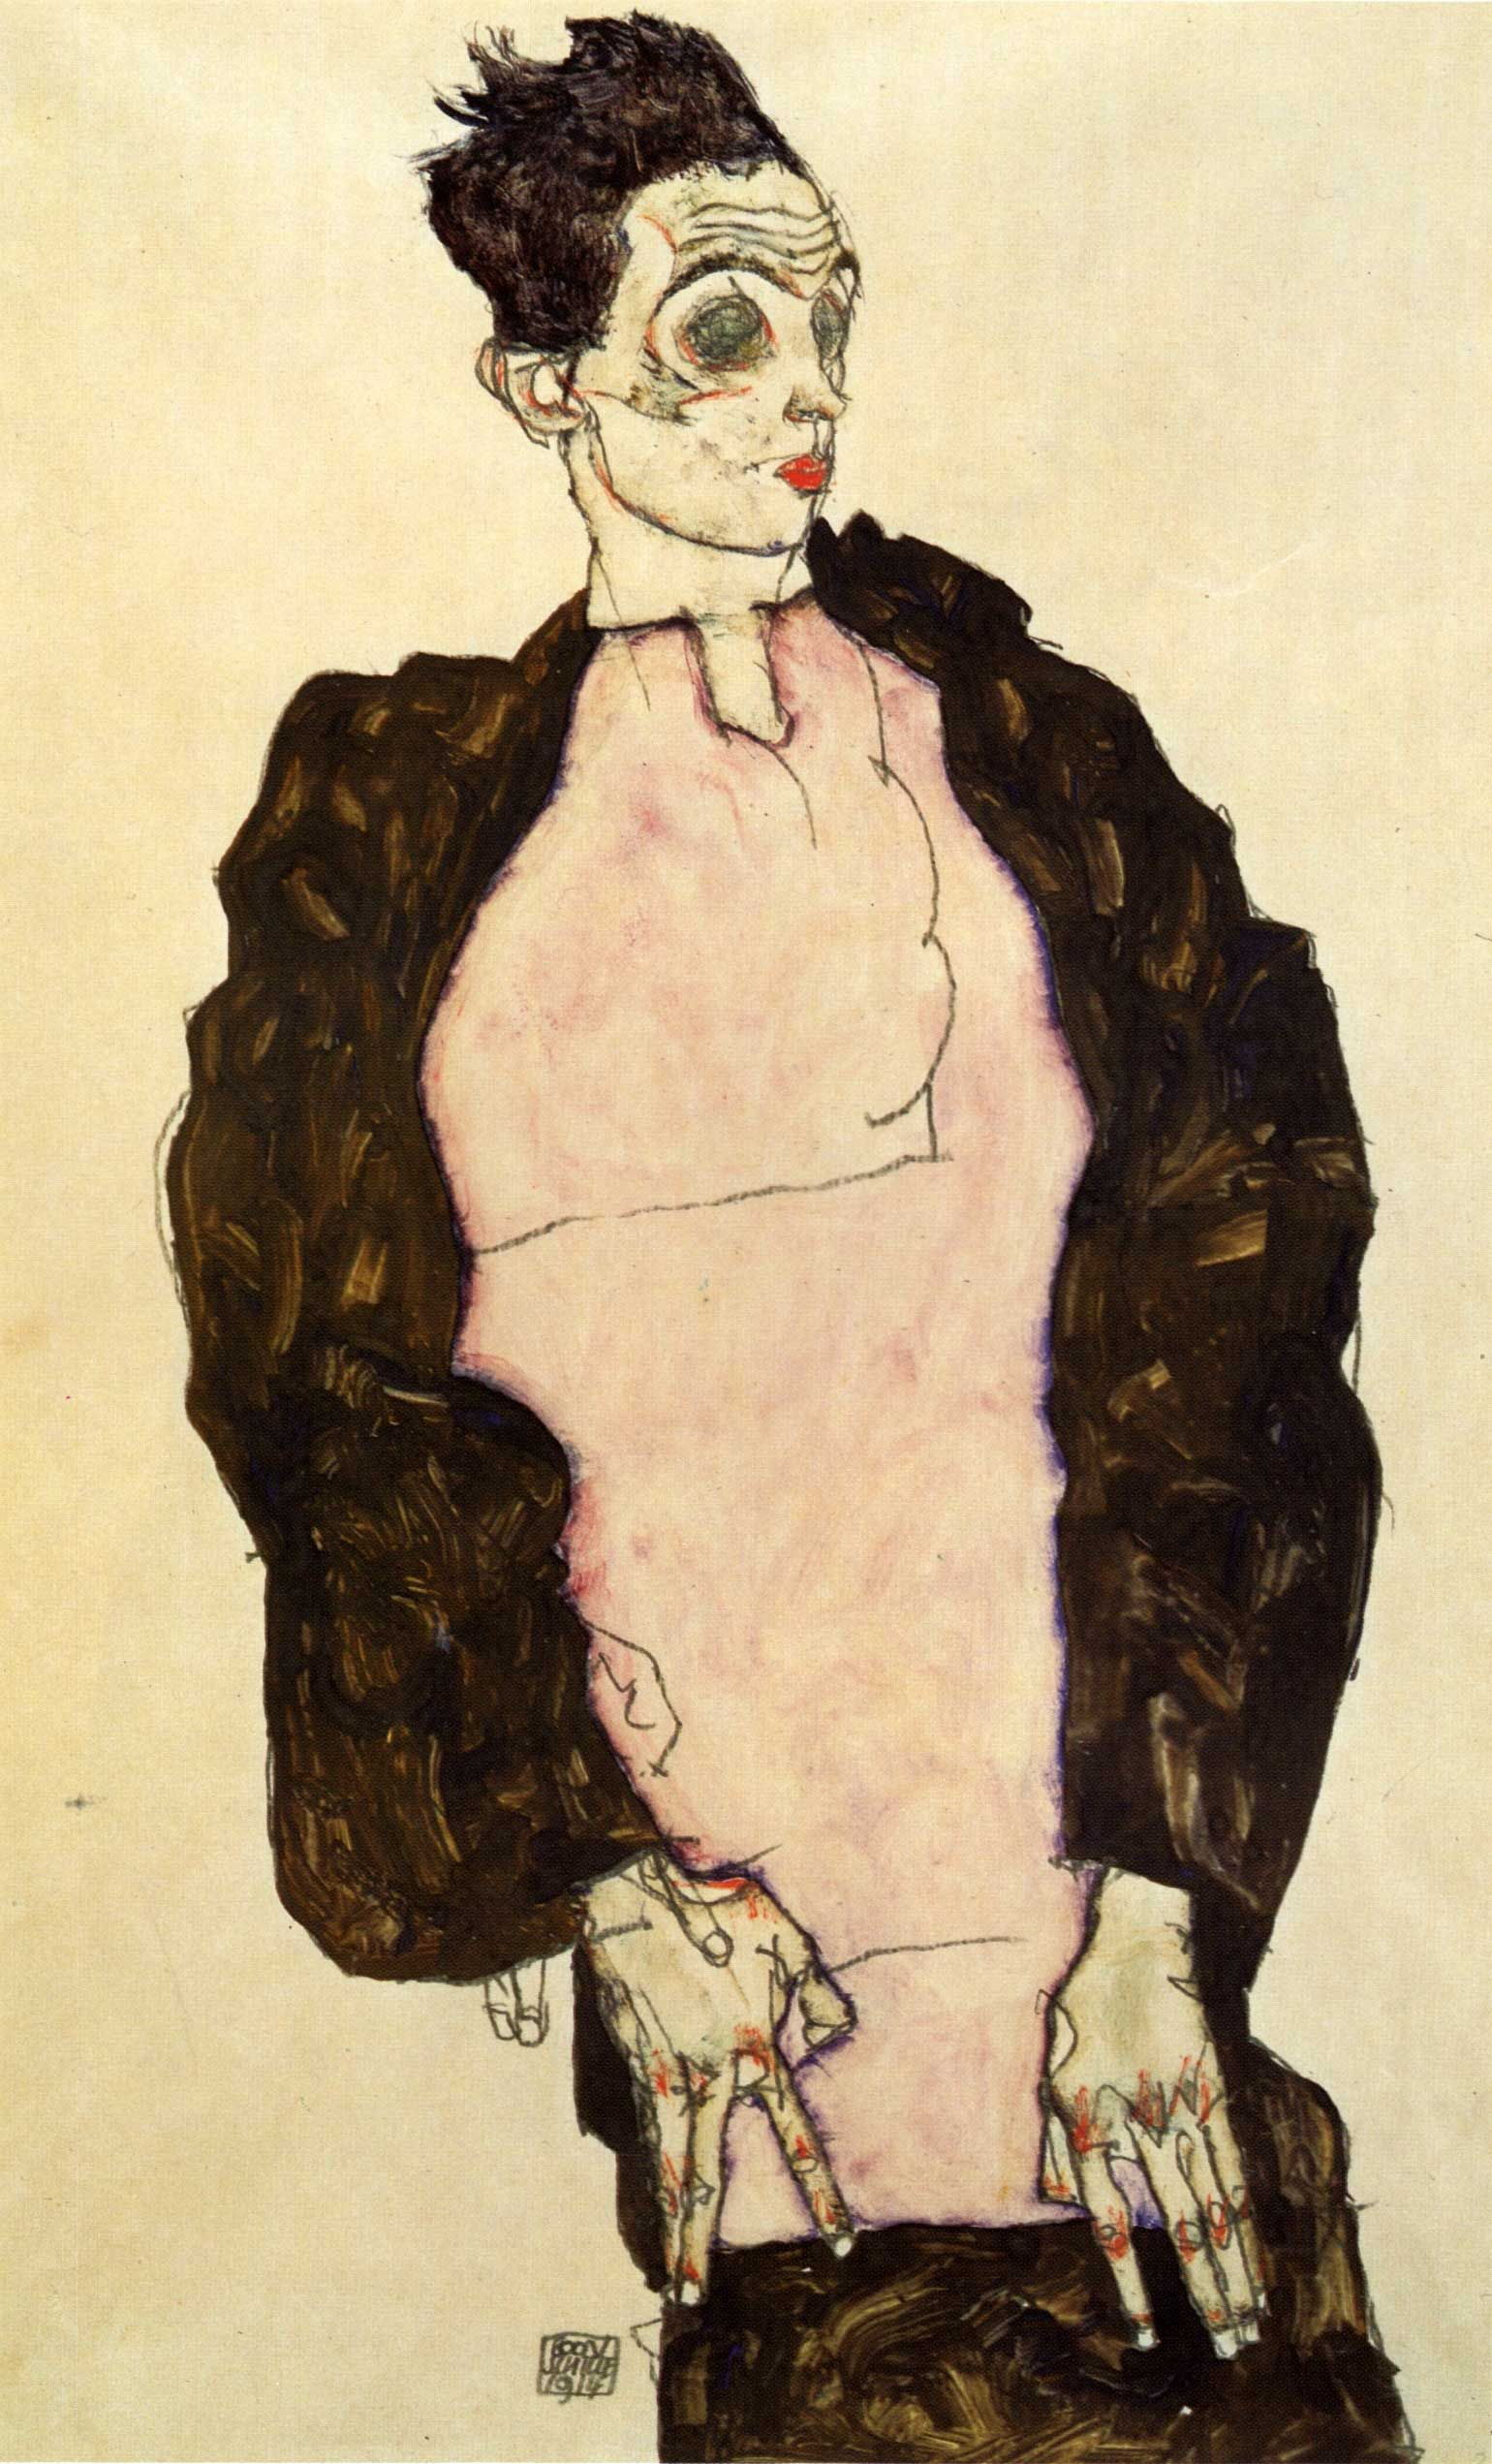 essay on egon schiele portrait of paris von gutersloh This item: trademark fine art portrait of paris von gutersloh by egon schiele, 14x19-inch canvas wall art set up a giveaway there's a problem loading this menu right now.